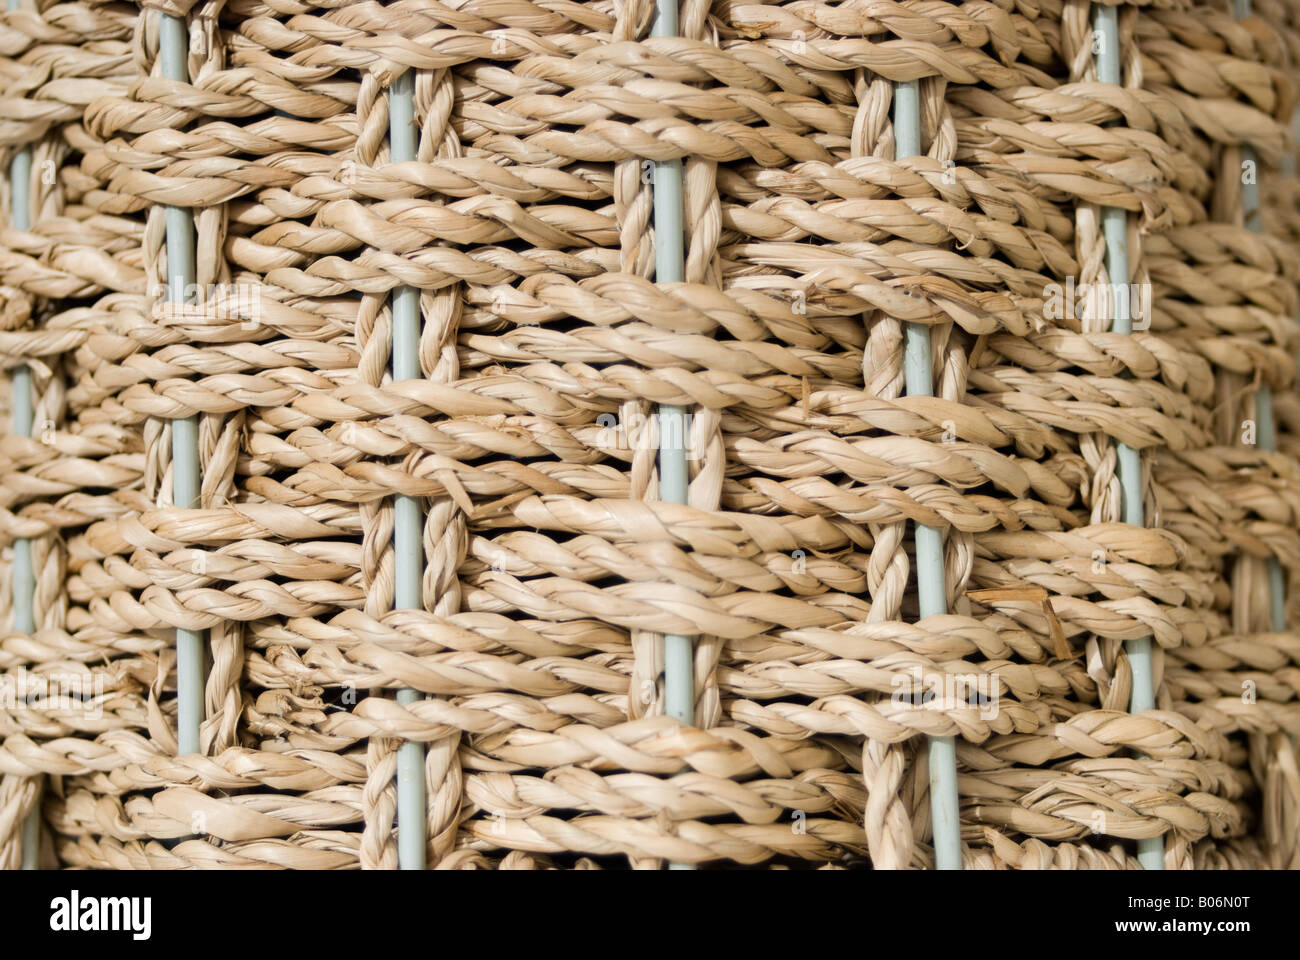 Woven Seagrass - Stock Image